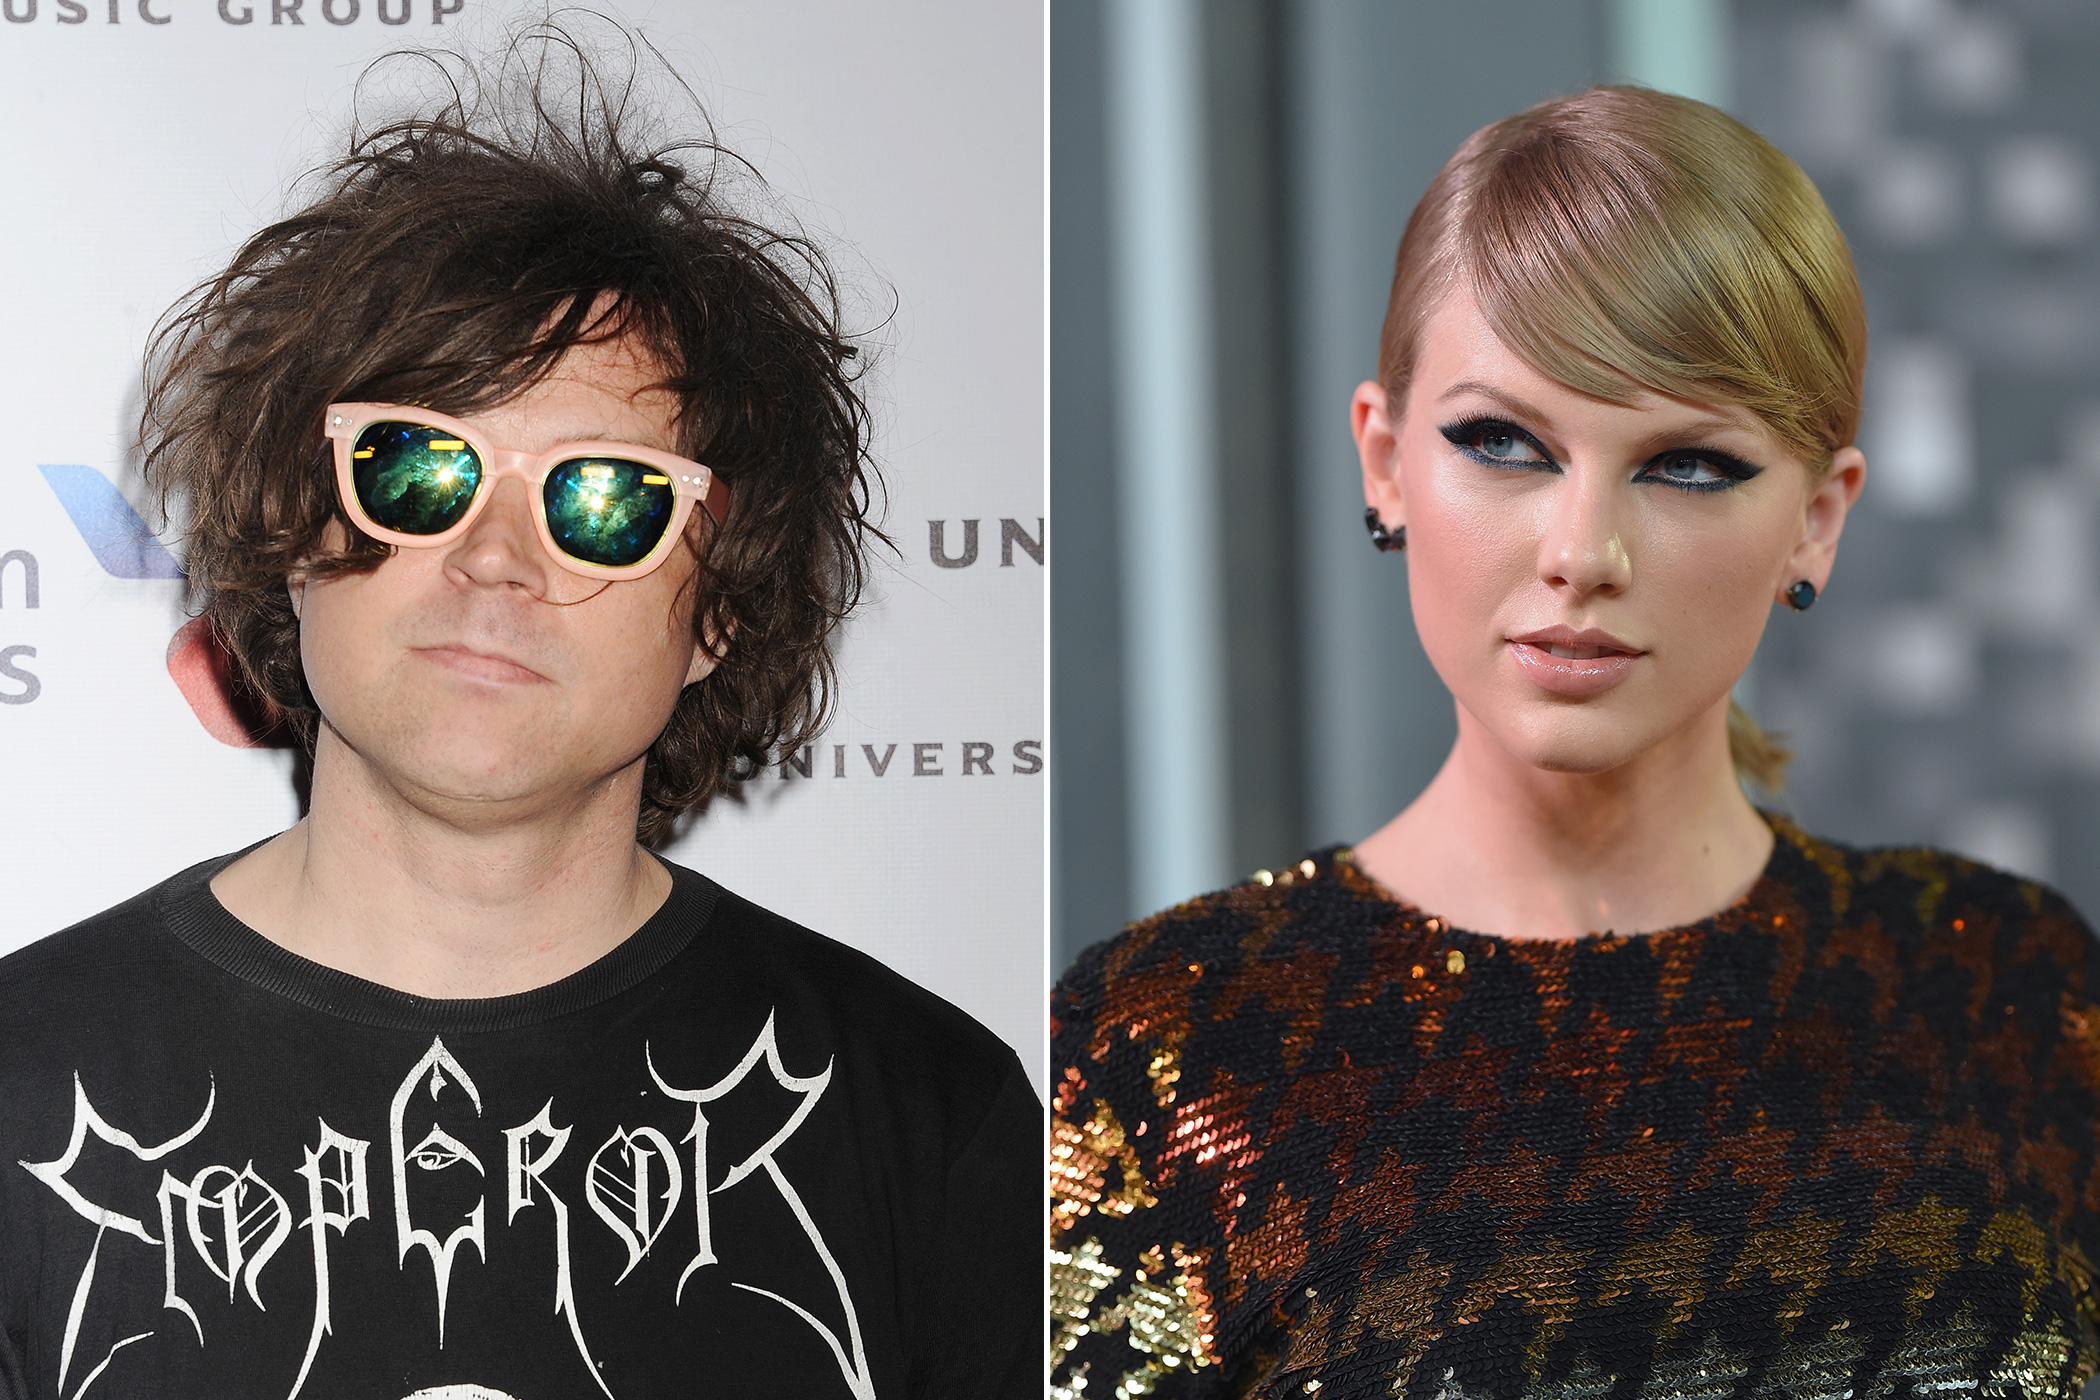 Left:Ryan Adams attends the Universal Music Group 2015 Post GRAMMY Party at The Theatre Ace Hotel Downtown LA on Feb. 8, 2015 in Los Angeles; Right:Taylor Swift arrives at the 2015 MTV Video Music Awards at Microsoft Theater on Aug. 30, 2015 in Los Angeles